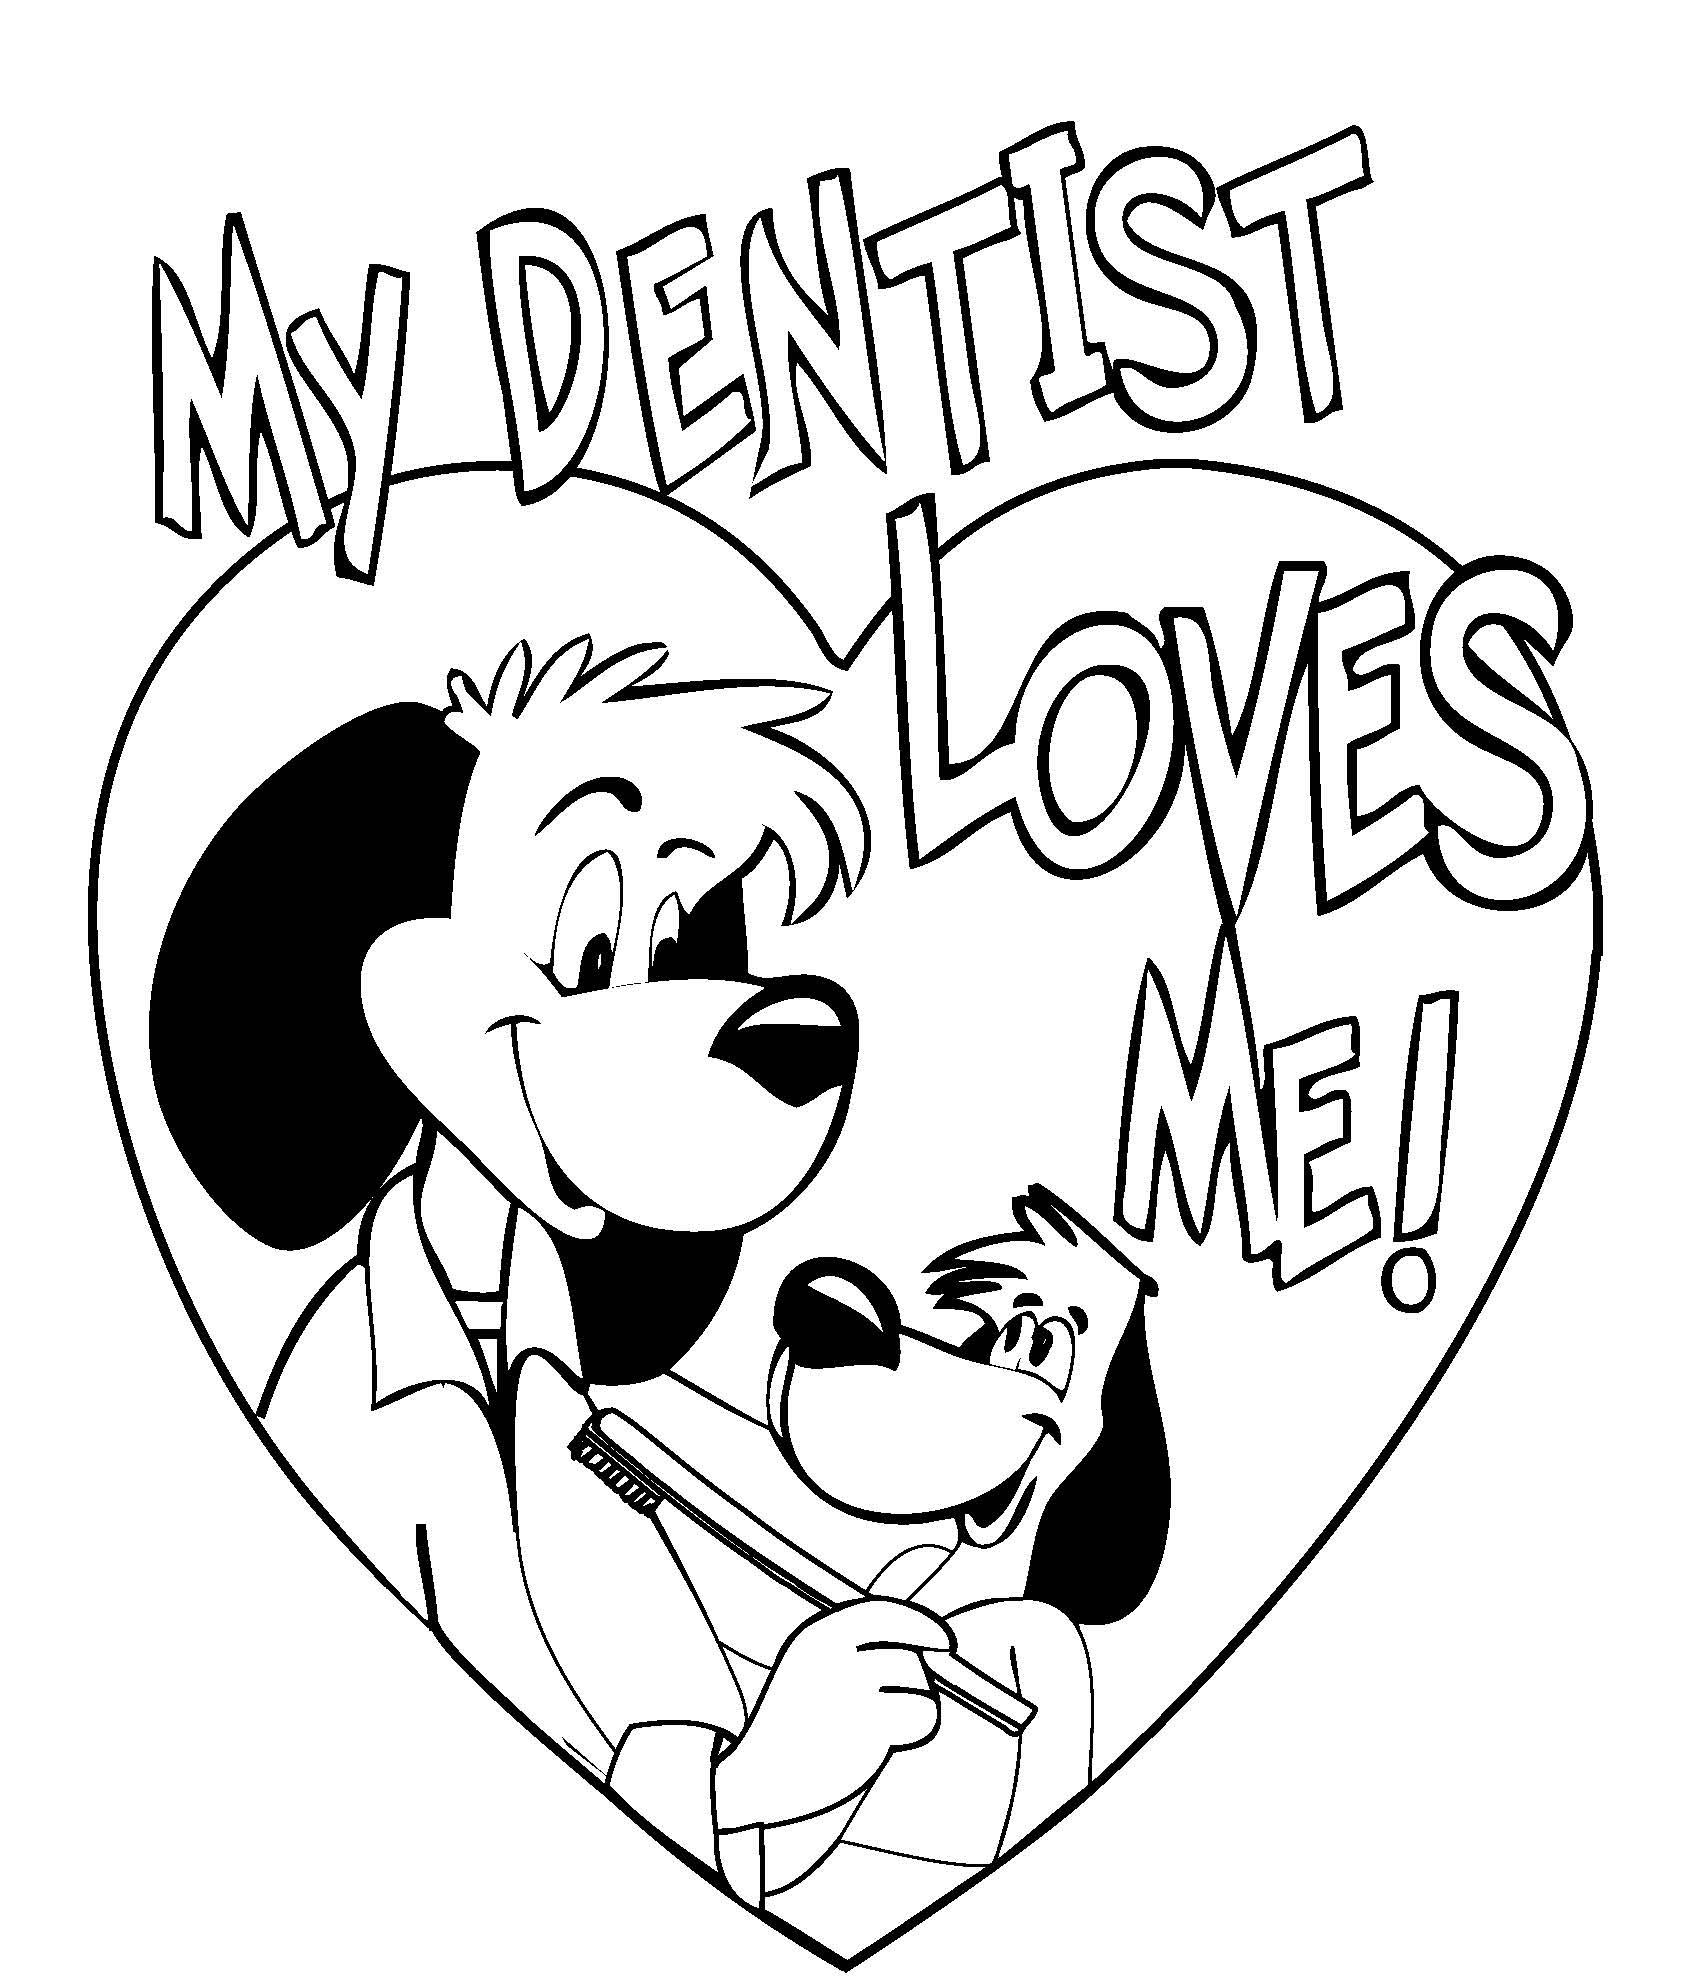 dental drawing at getdrawings com free for personal use dental